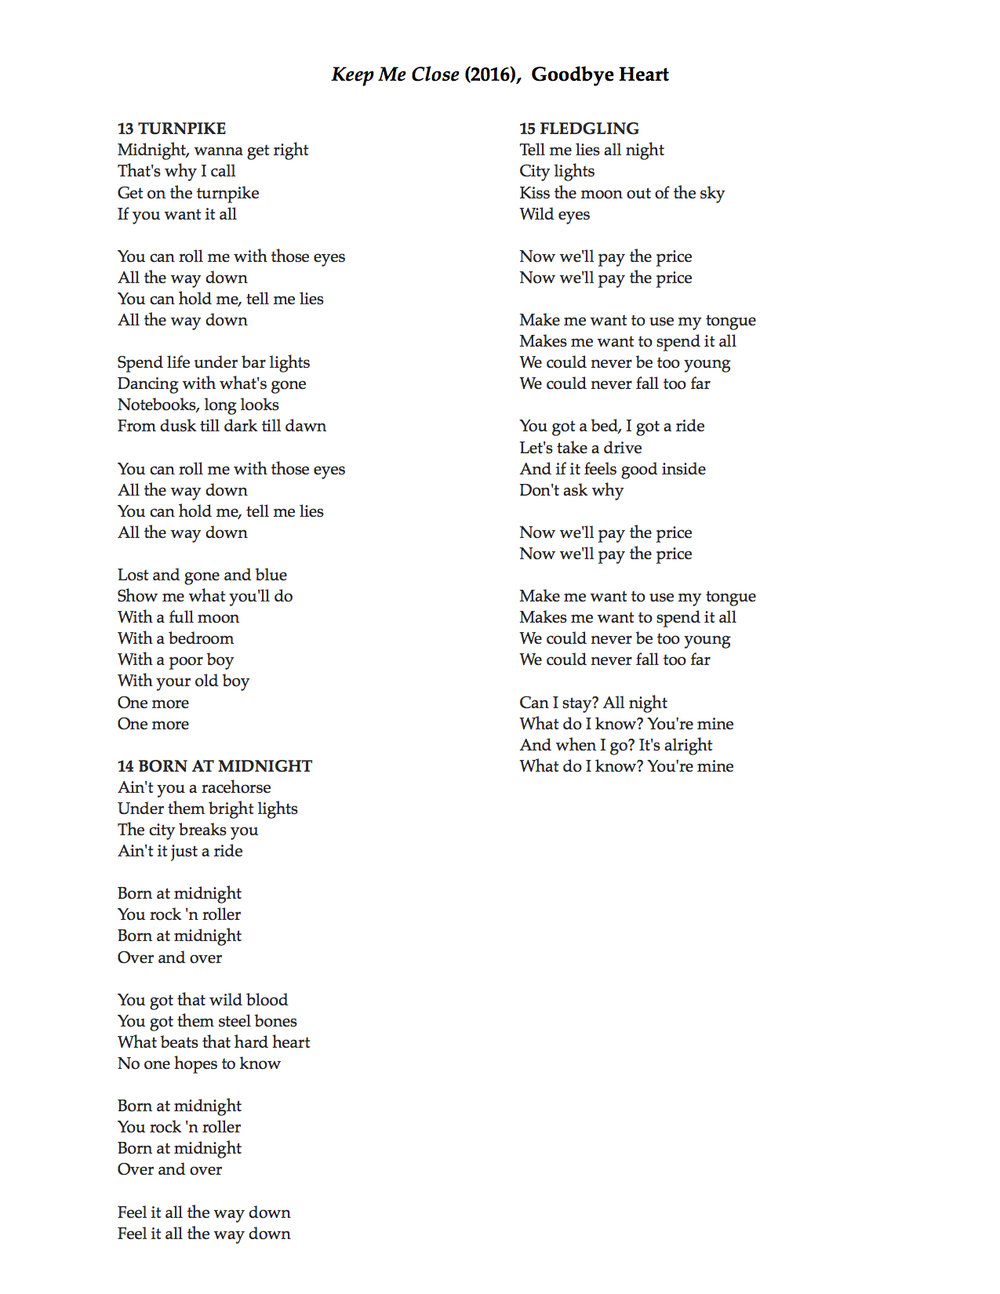 keep me close lyrics 13-15